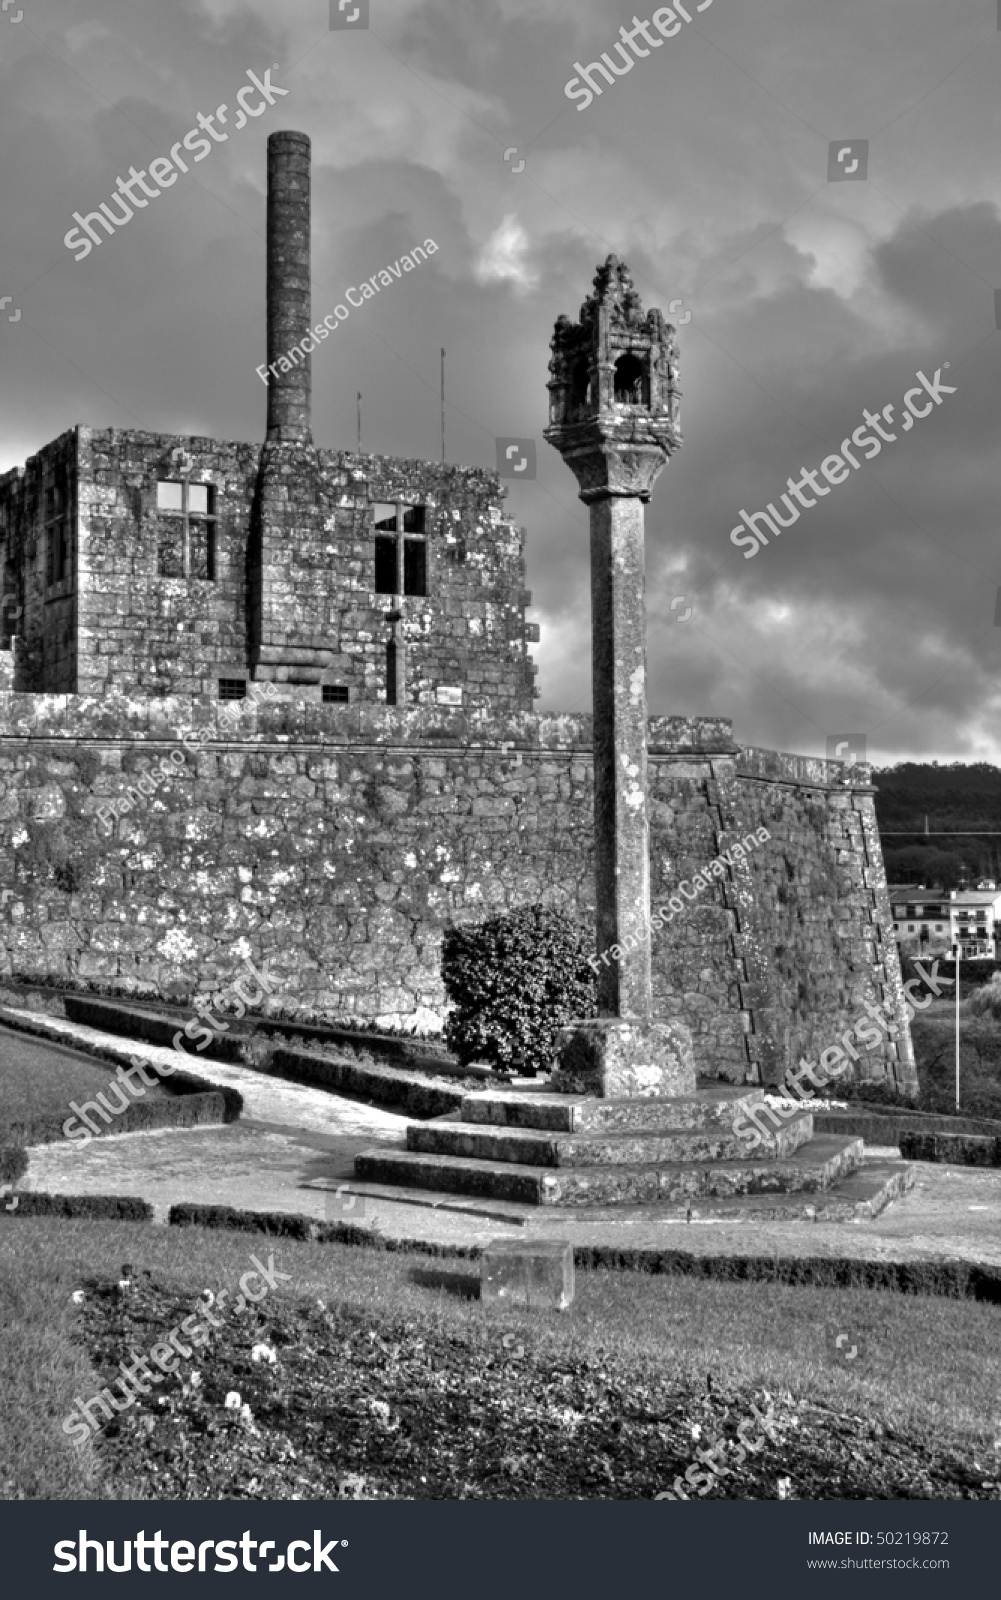 barcelos city castle under dark cloudy sky black and